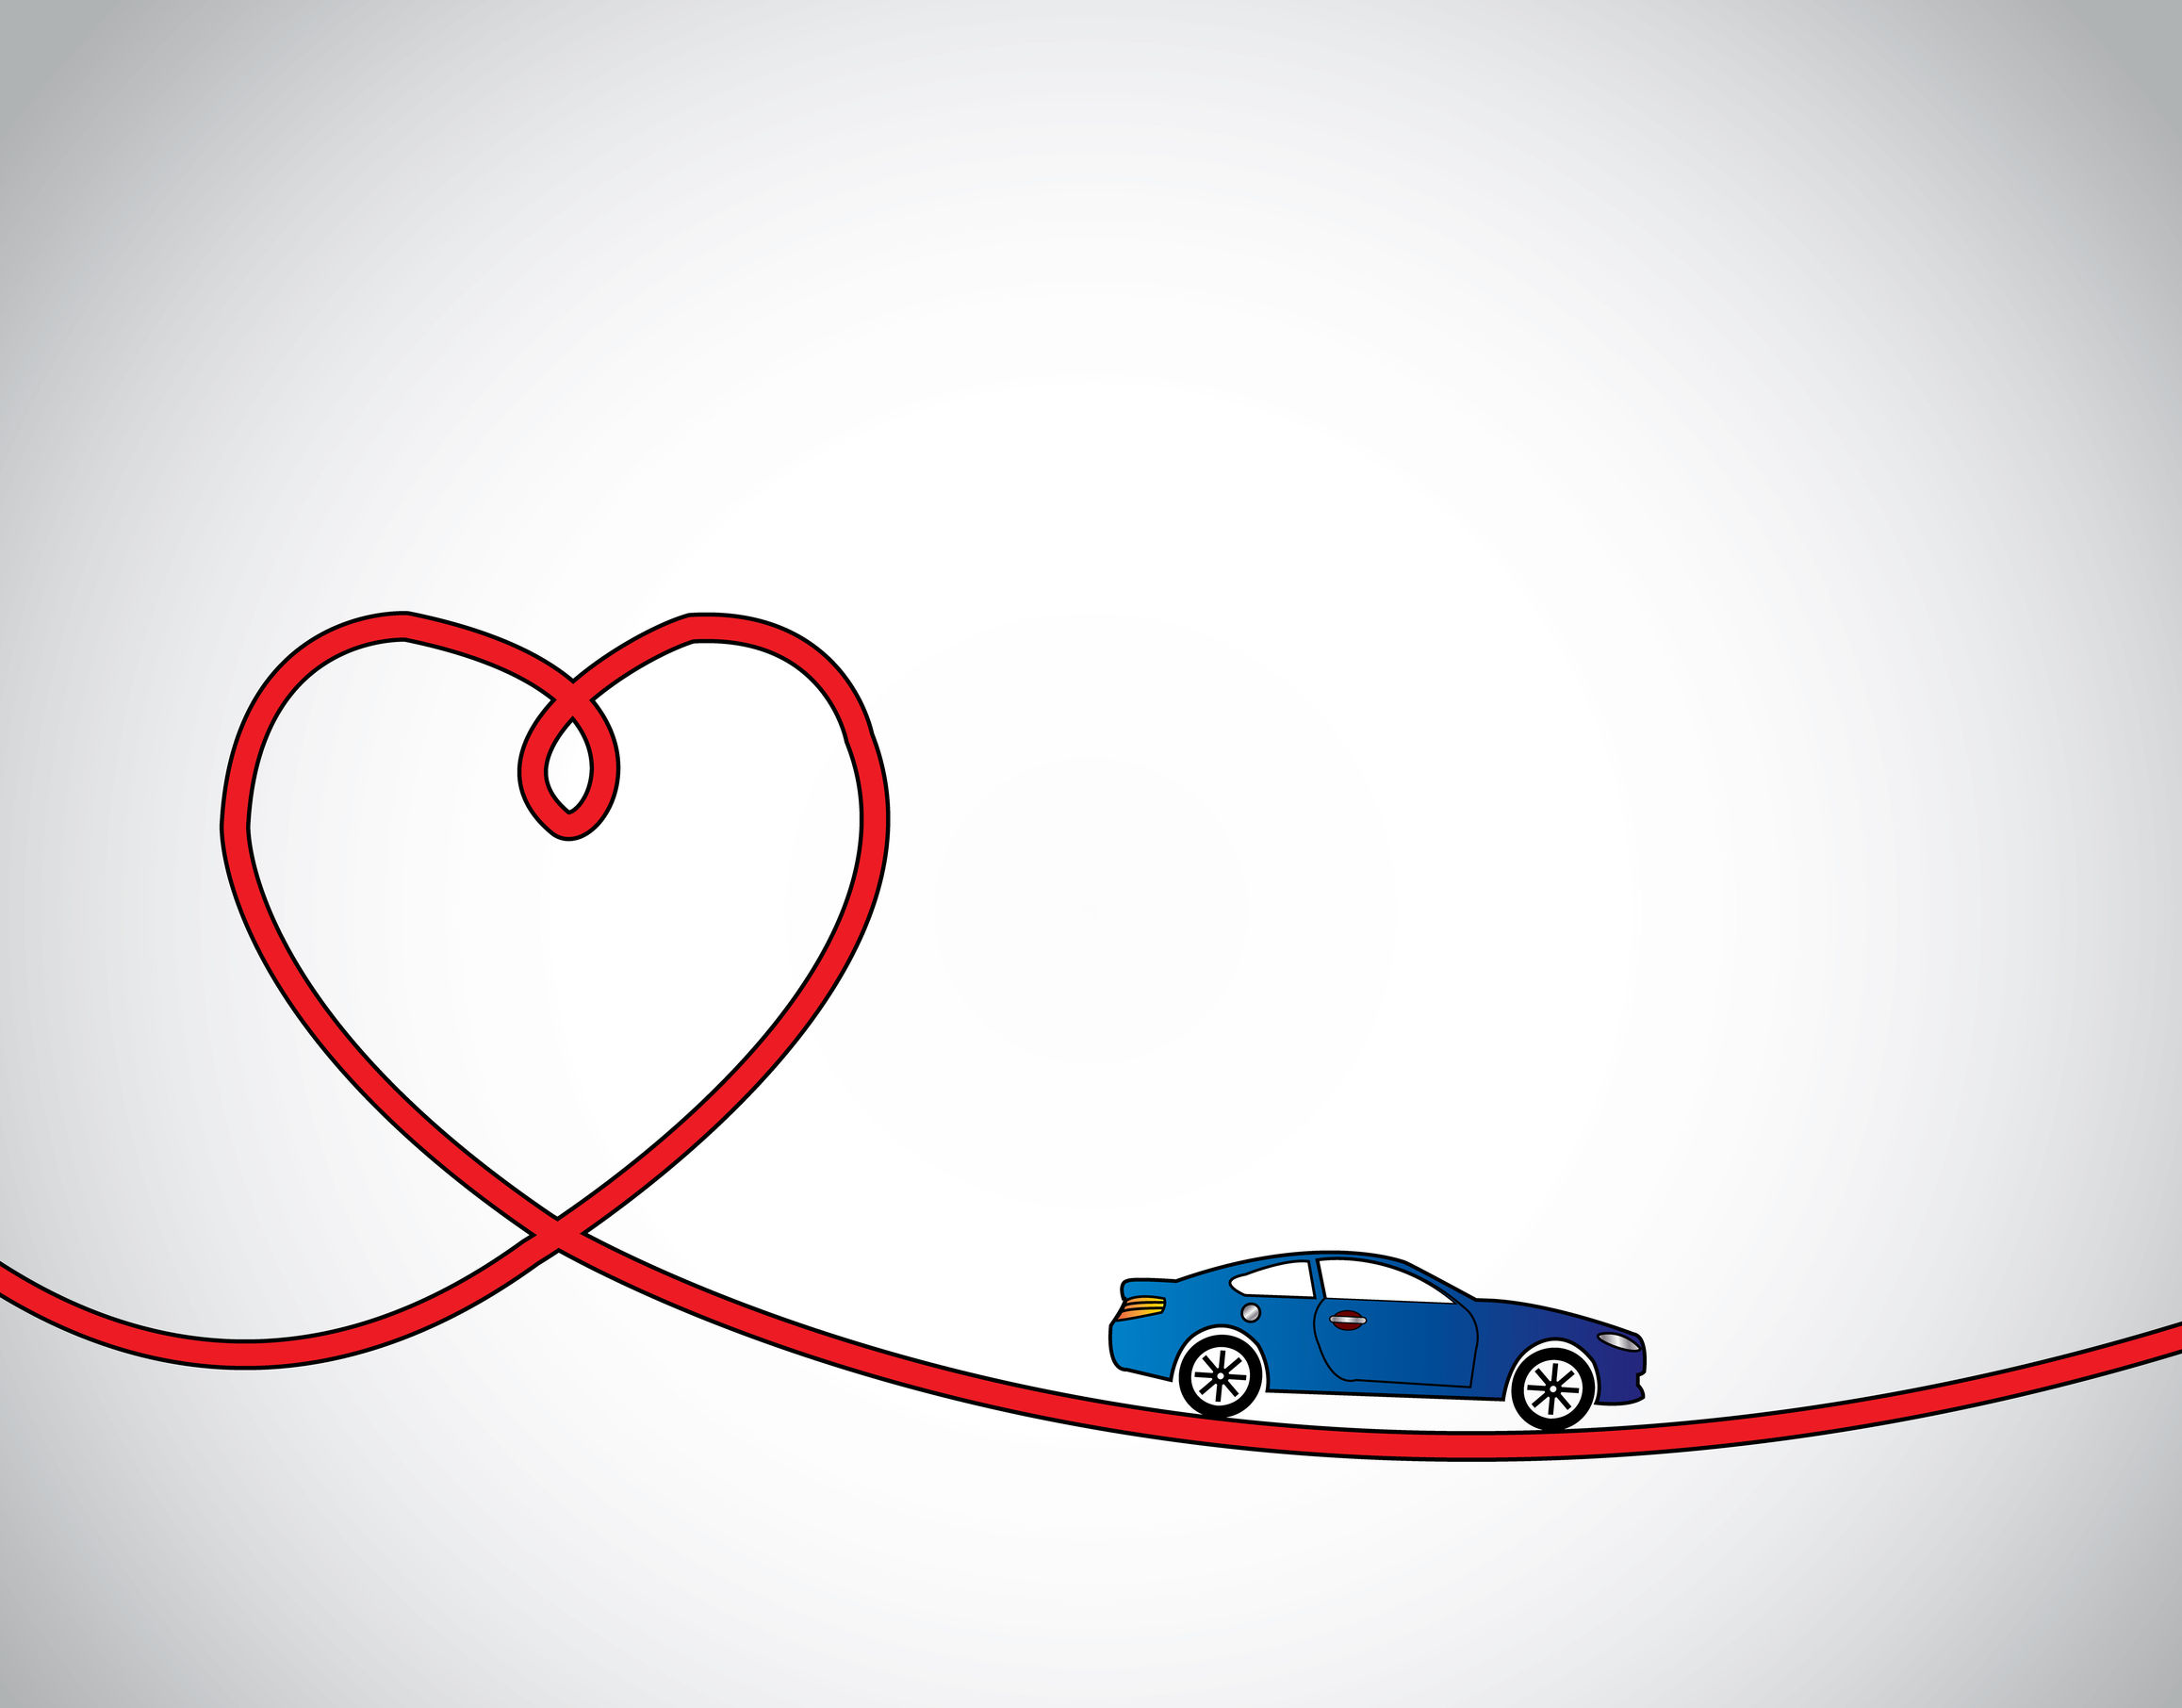 Take Care of Your #1 Valentine This February: Your Car